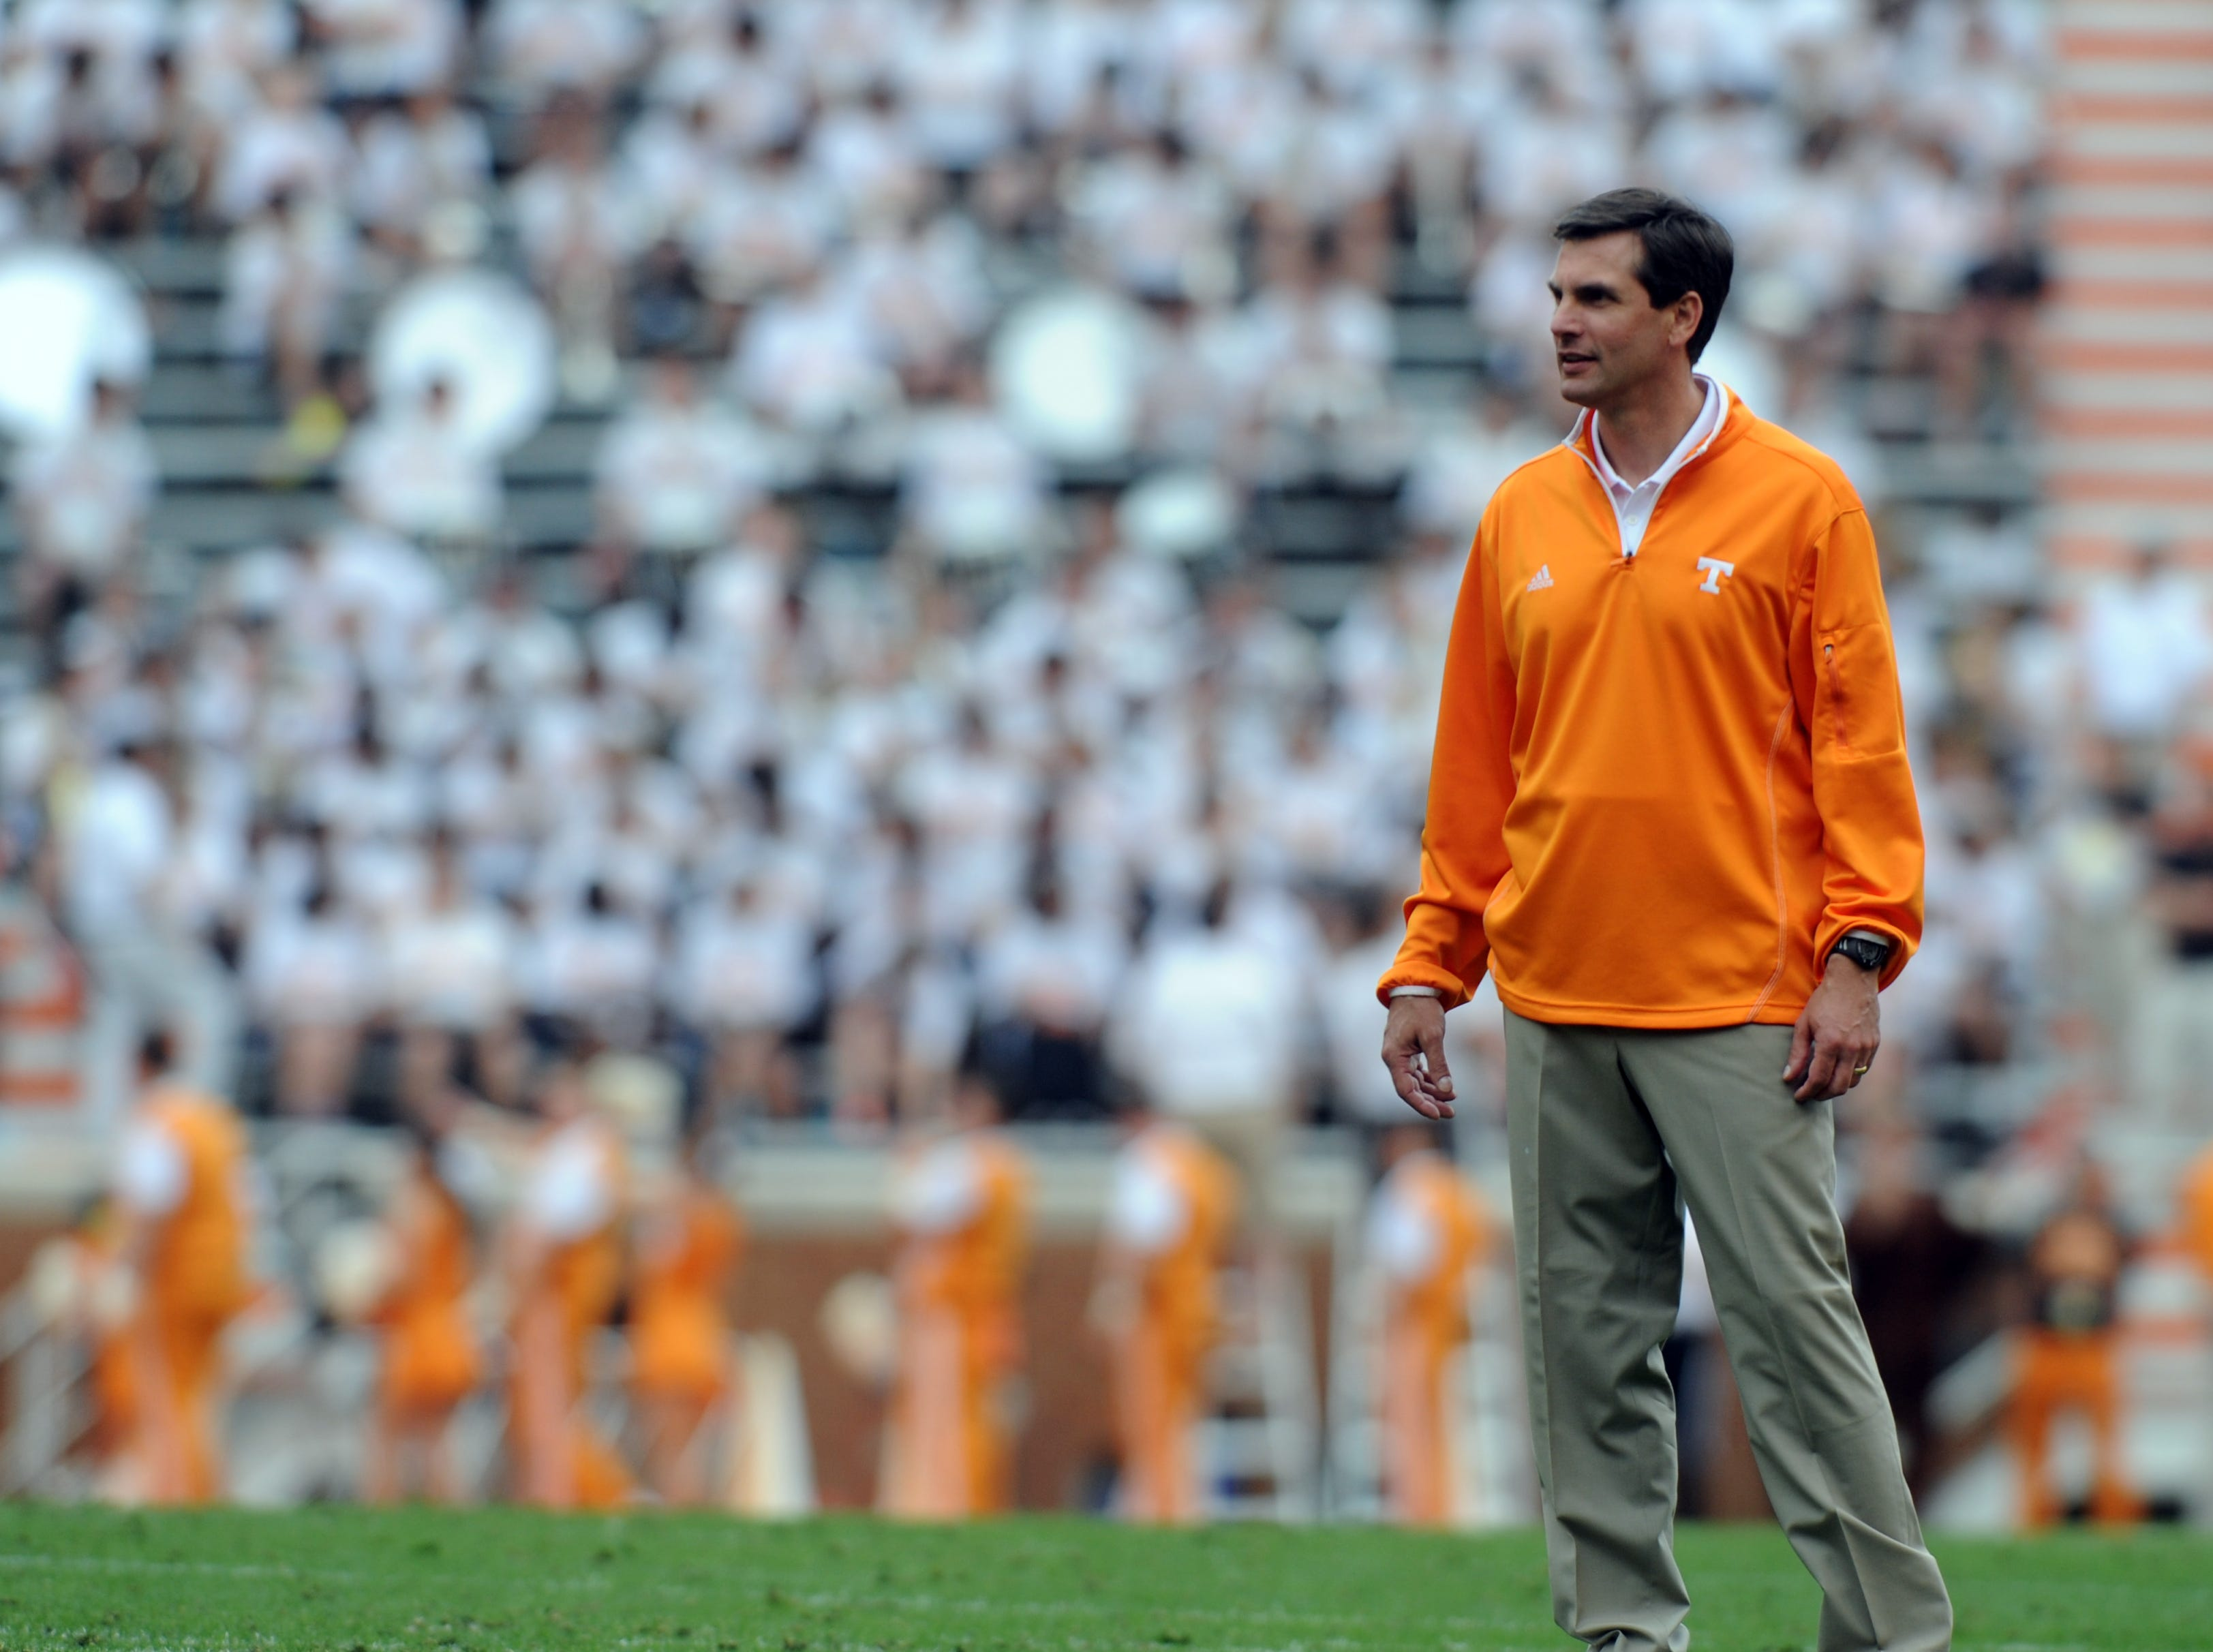 Tennessee head coach Derek Dooley looks on during the Orange and White Game at Neyland Stadium Saturday, April 21, 2012.